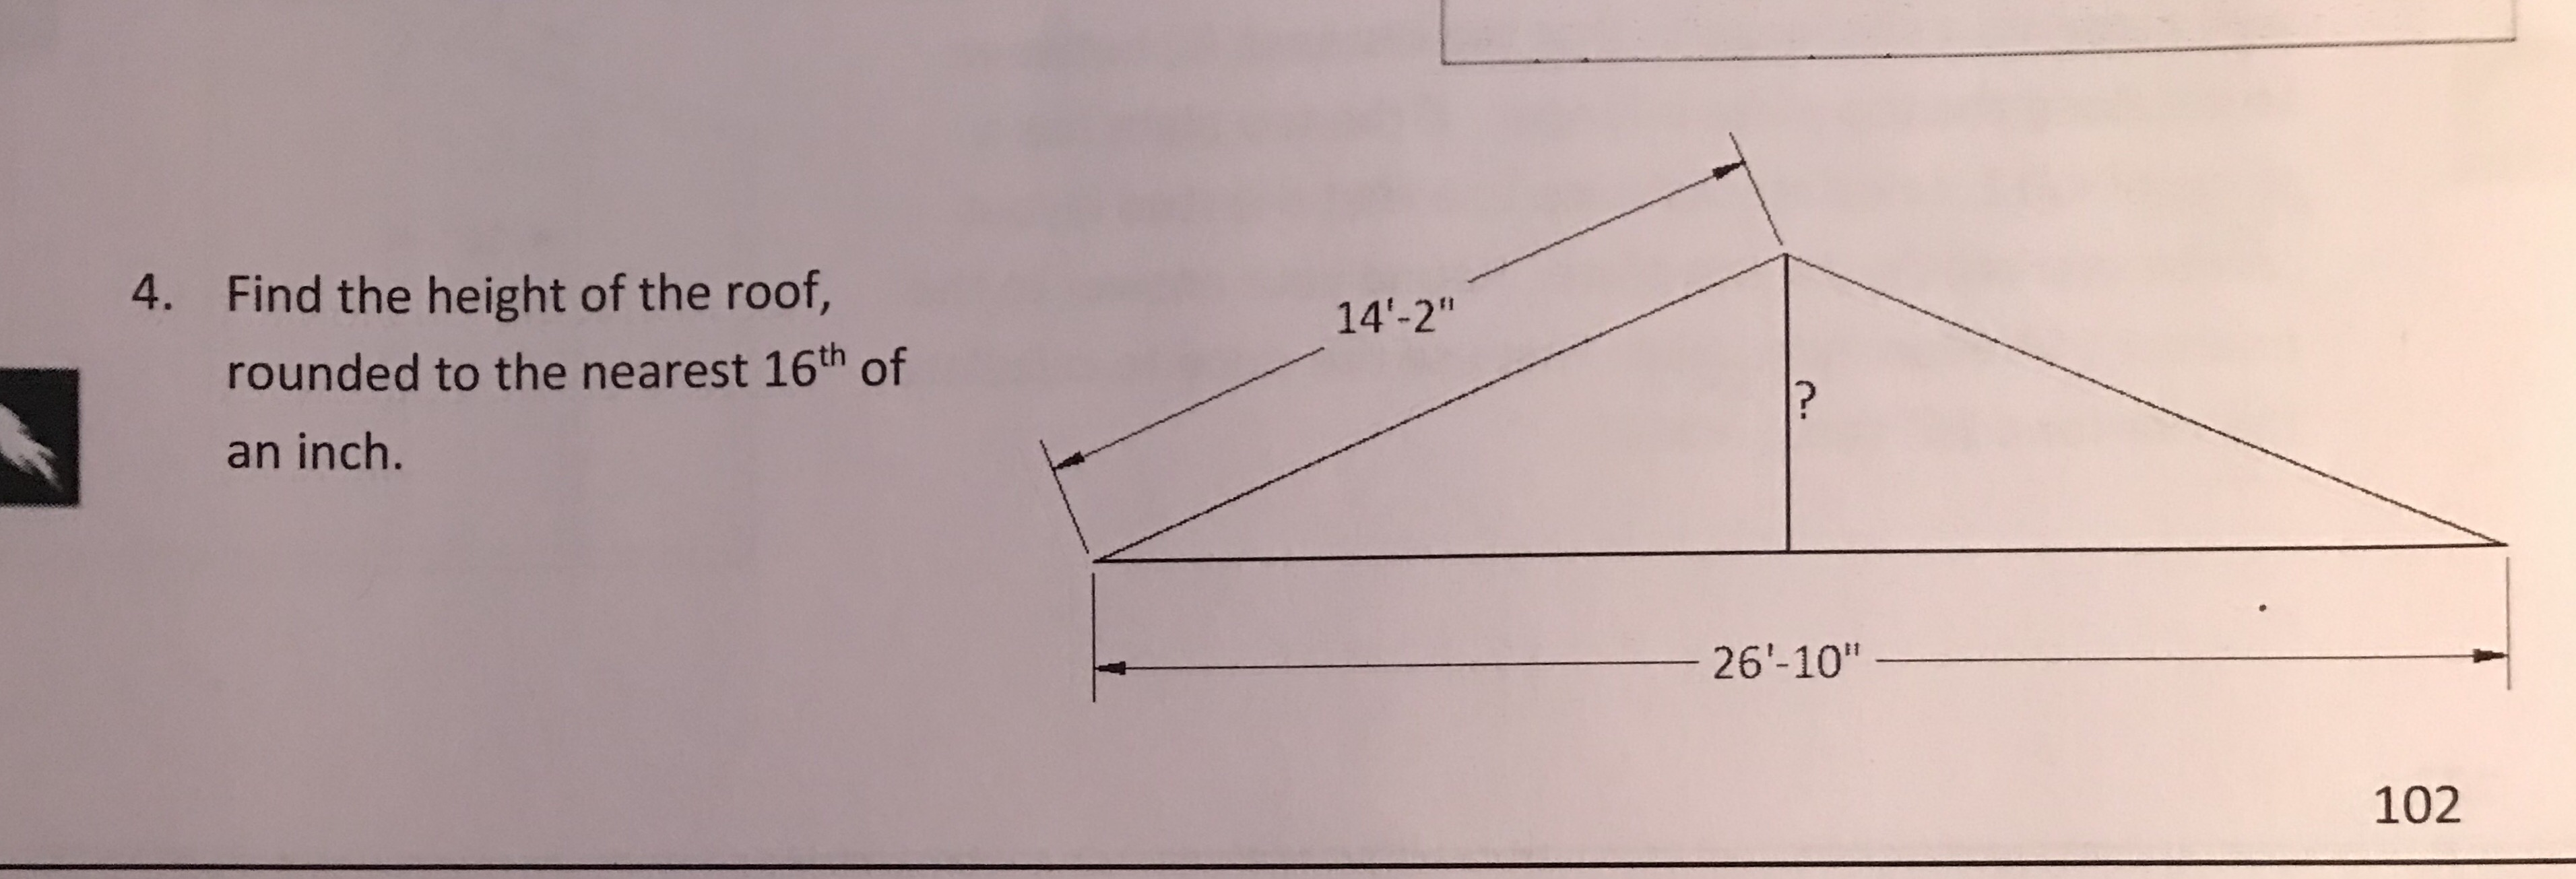 "Find the height of the roof, rounded to the nearest 16th of an inch. 4. 14'-2"" 26'-10'"" 102"